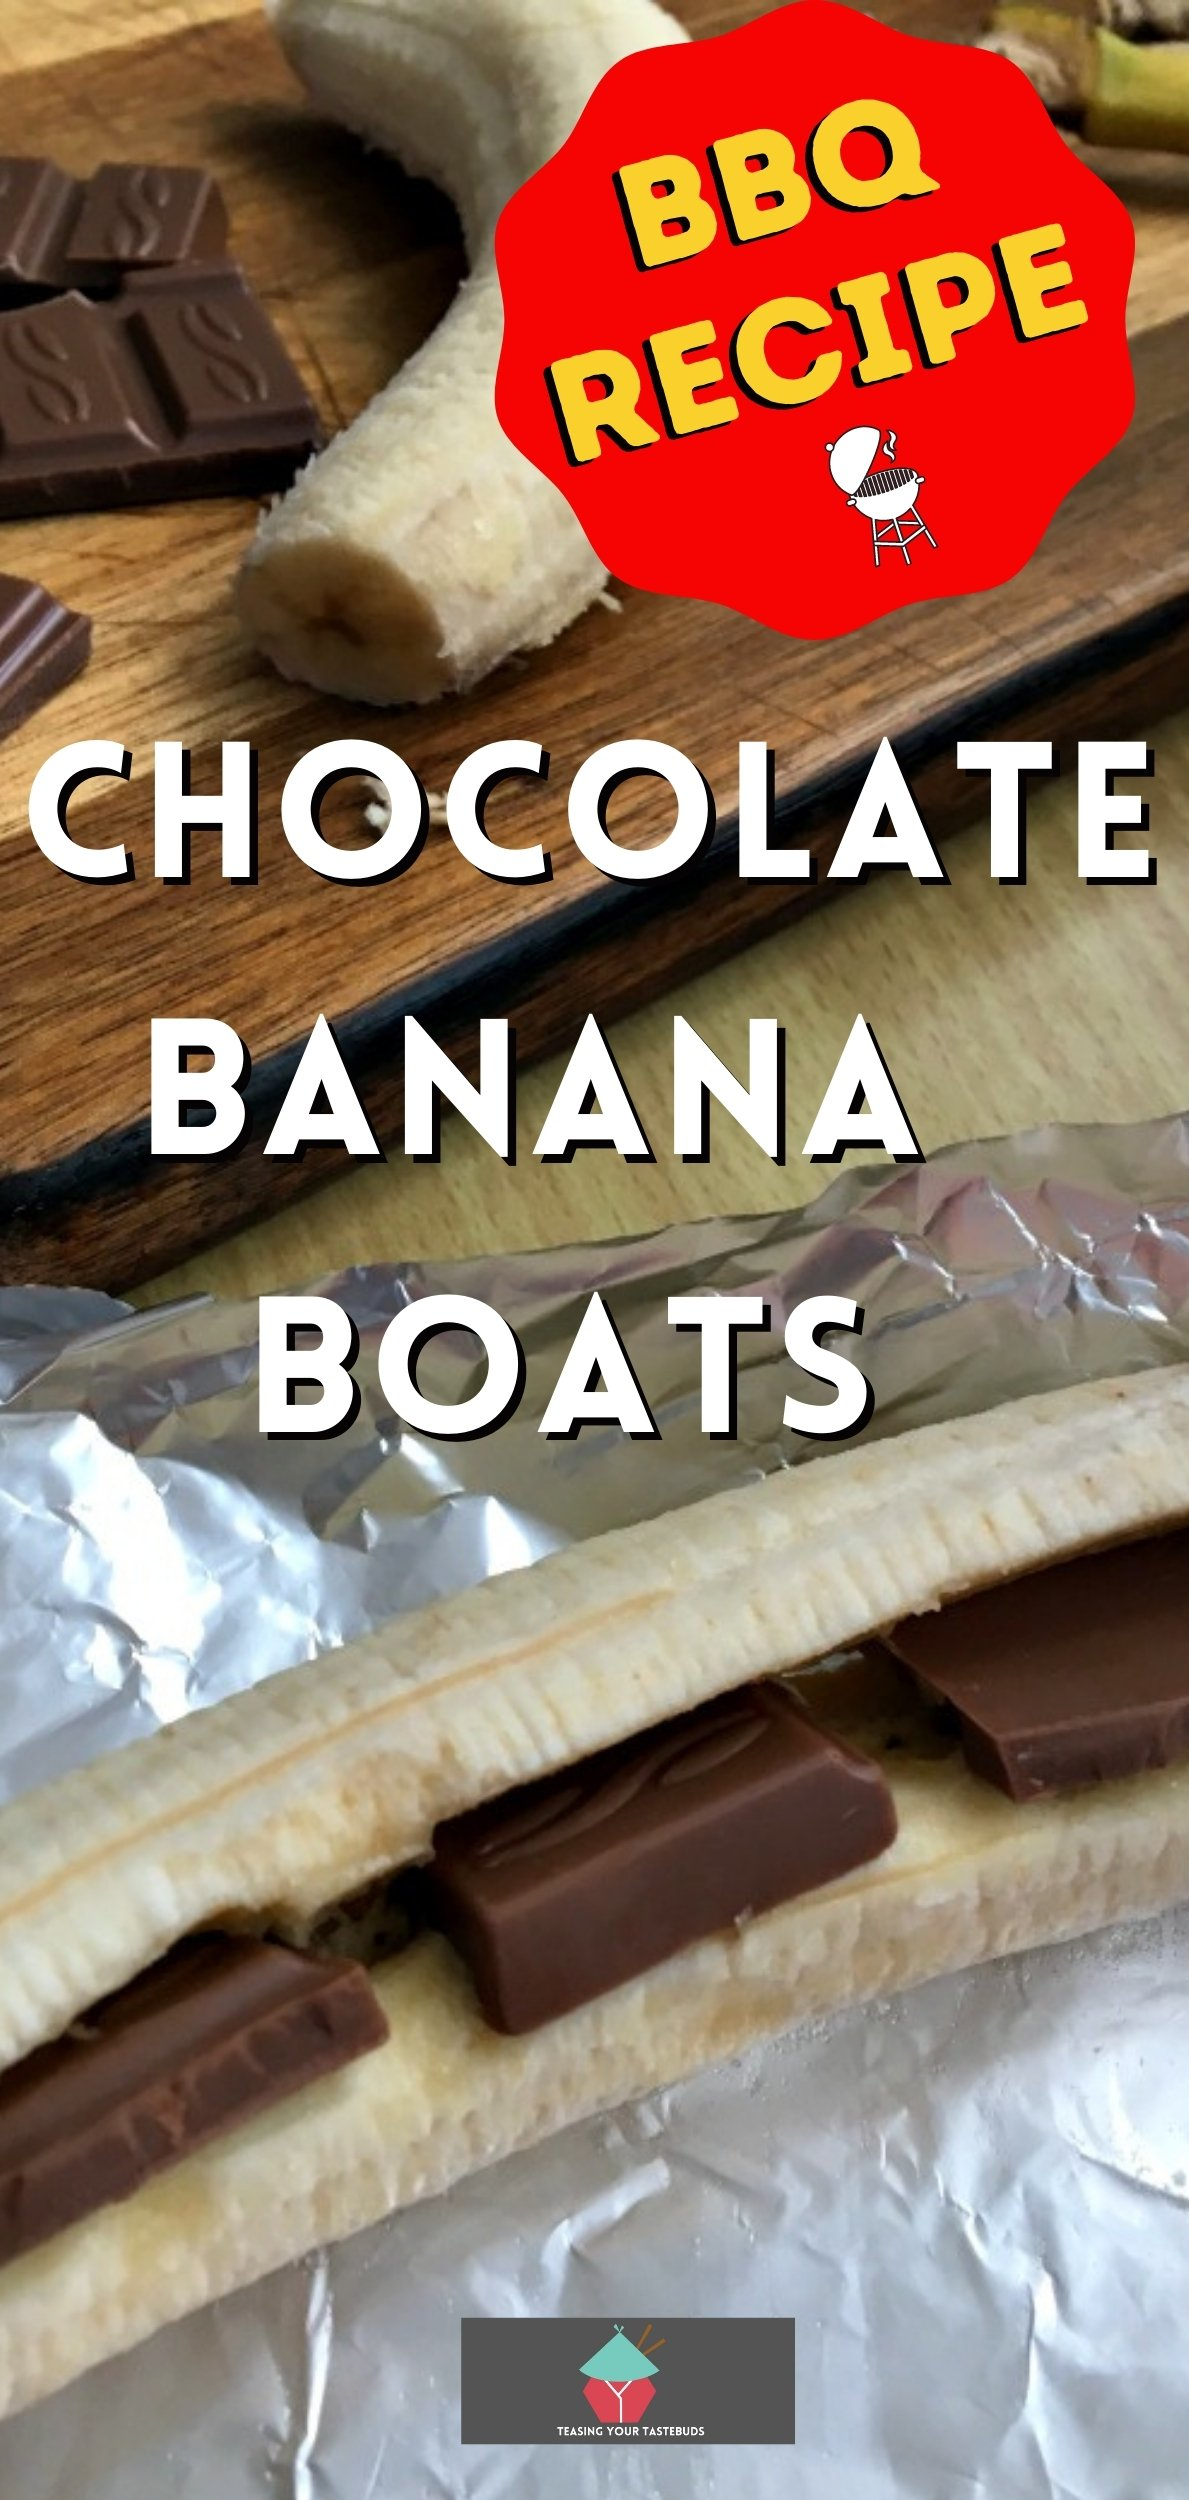 Chocolate Banana Boats are easy chocolate filled bananas, wrapped in foil and grilled. Perfect for camping and BBQ's. Easy recipe with just 2 ingredients